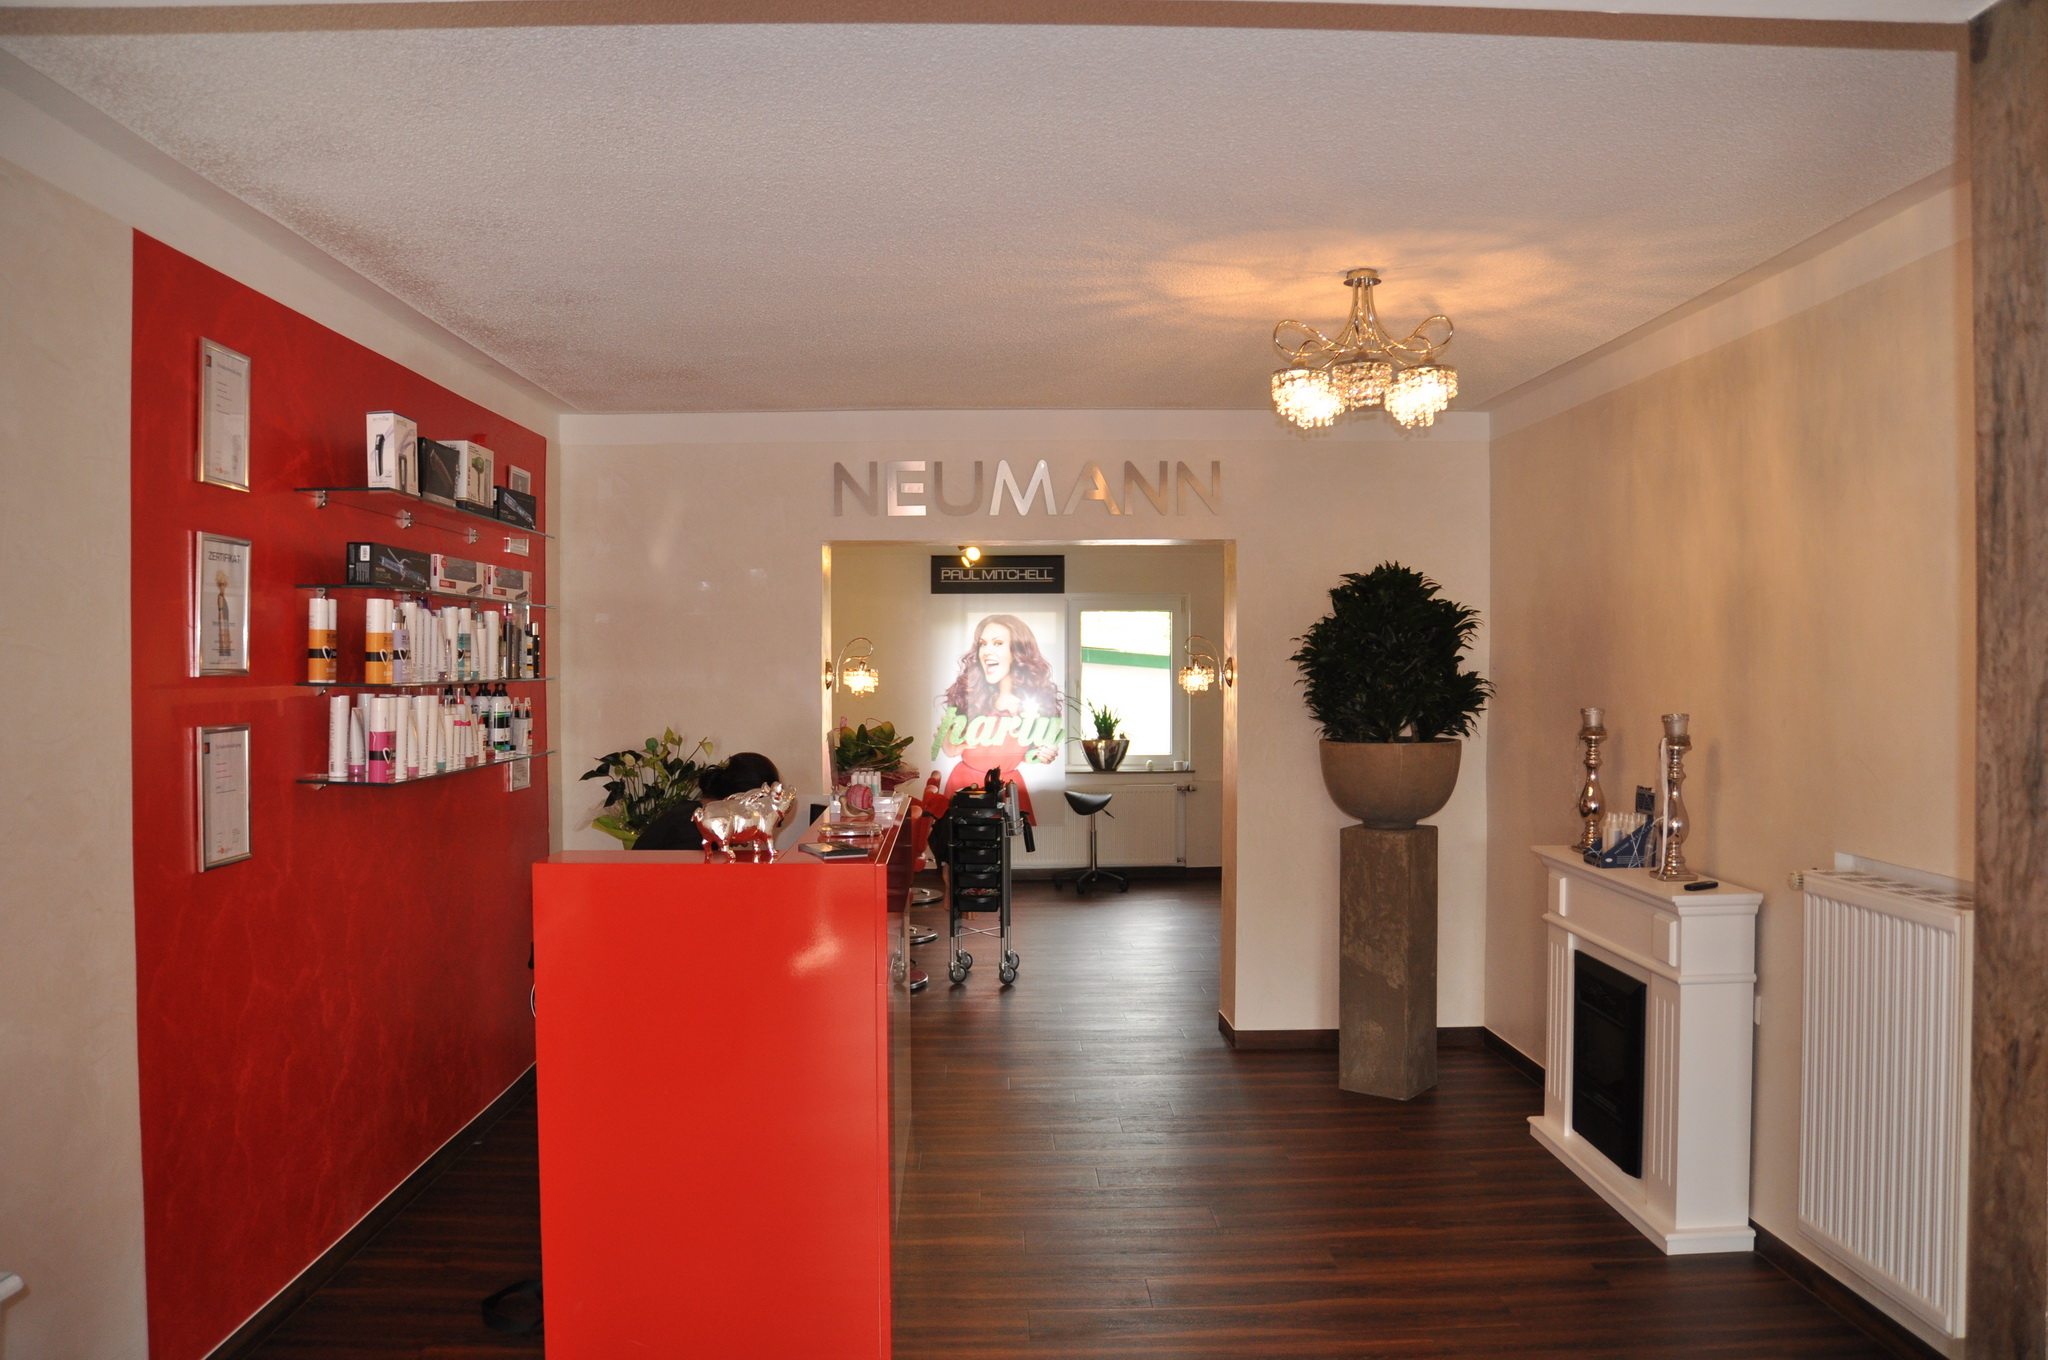 Salon Neumann 09 2015 13